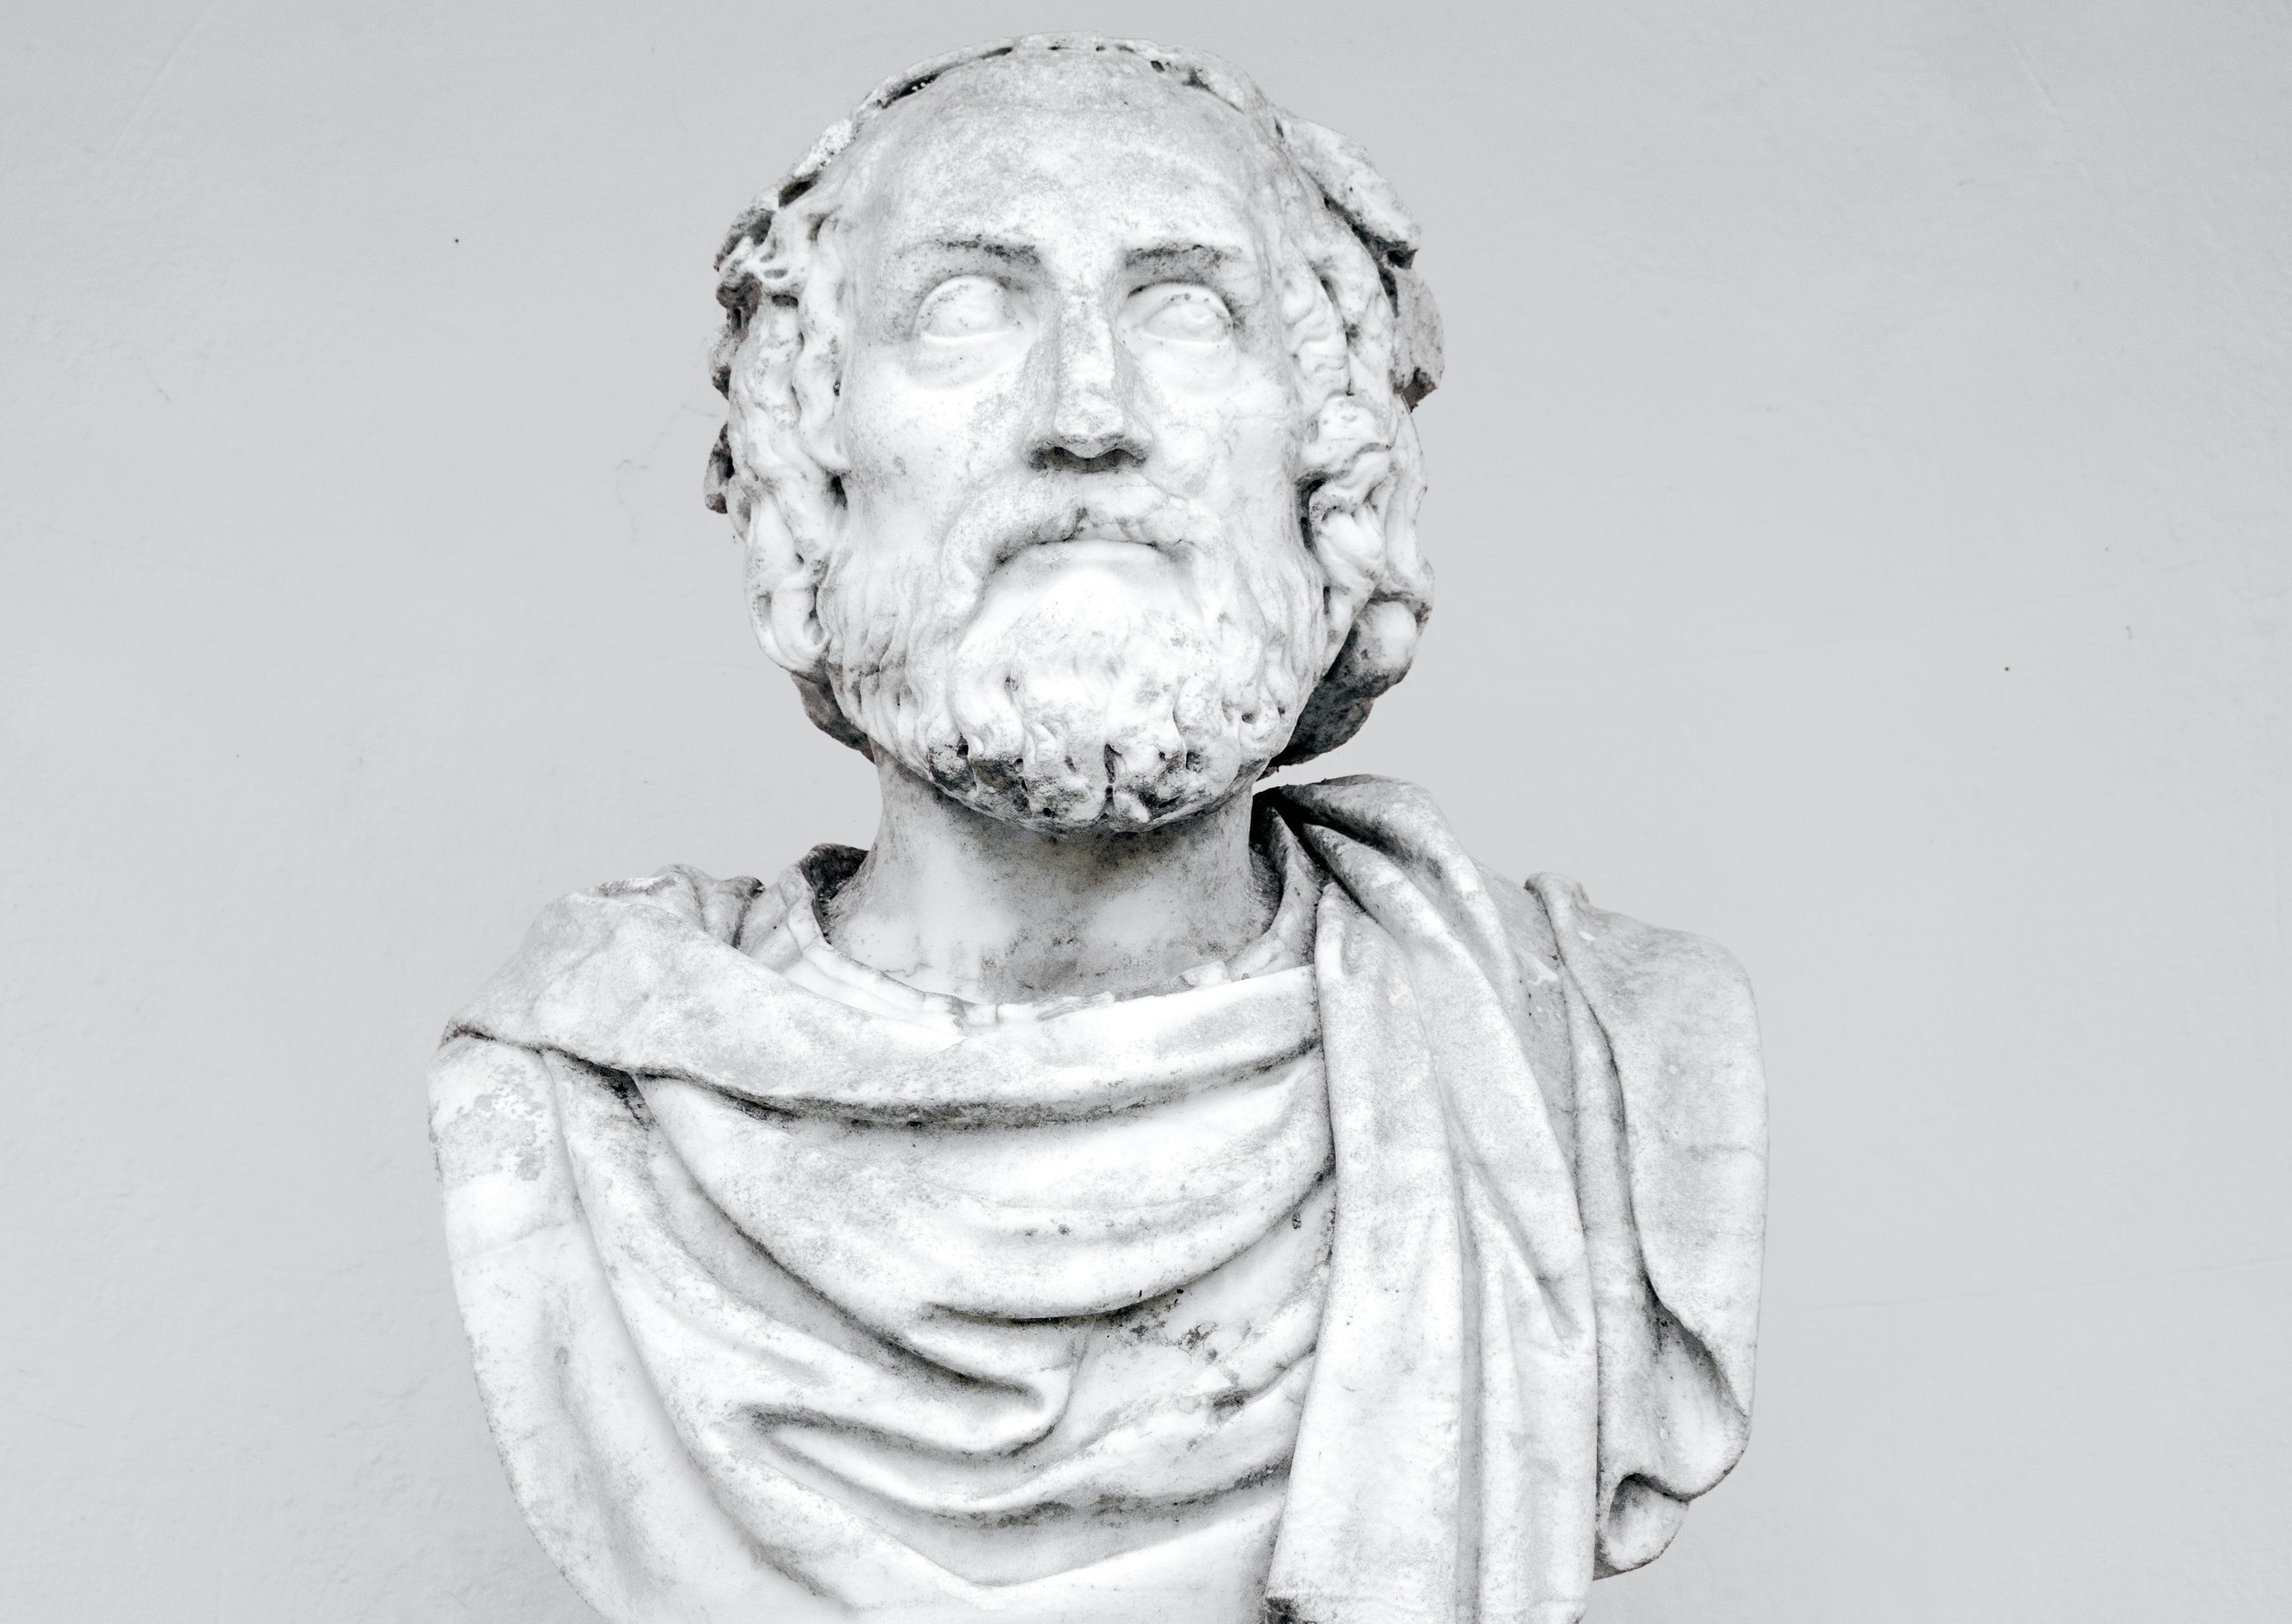 The bust of an ancient Greek philosopher.